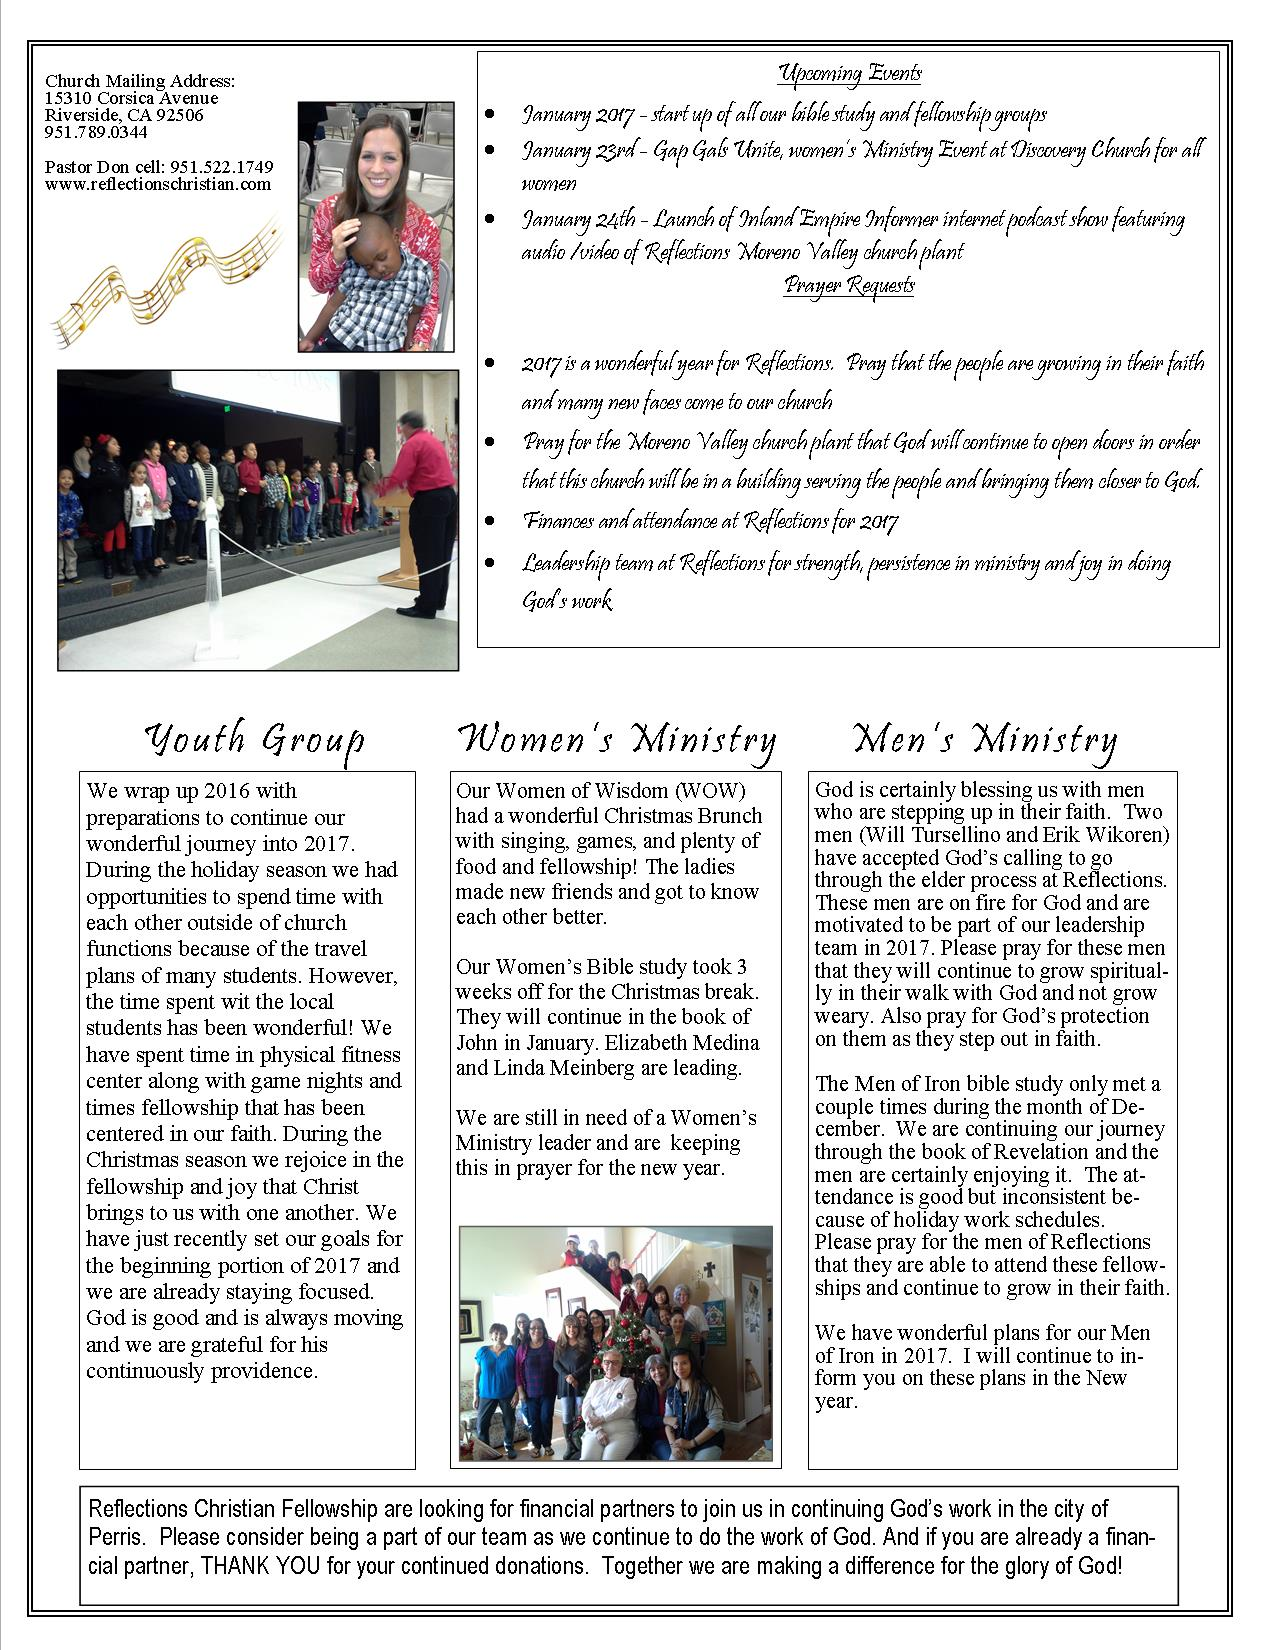 reflections christian fellowship monthly newsletter calendar